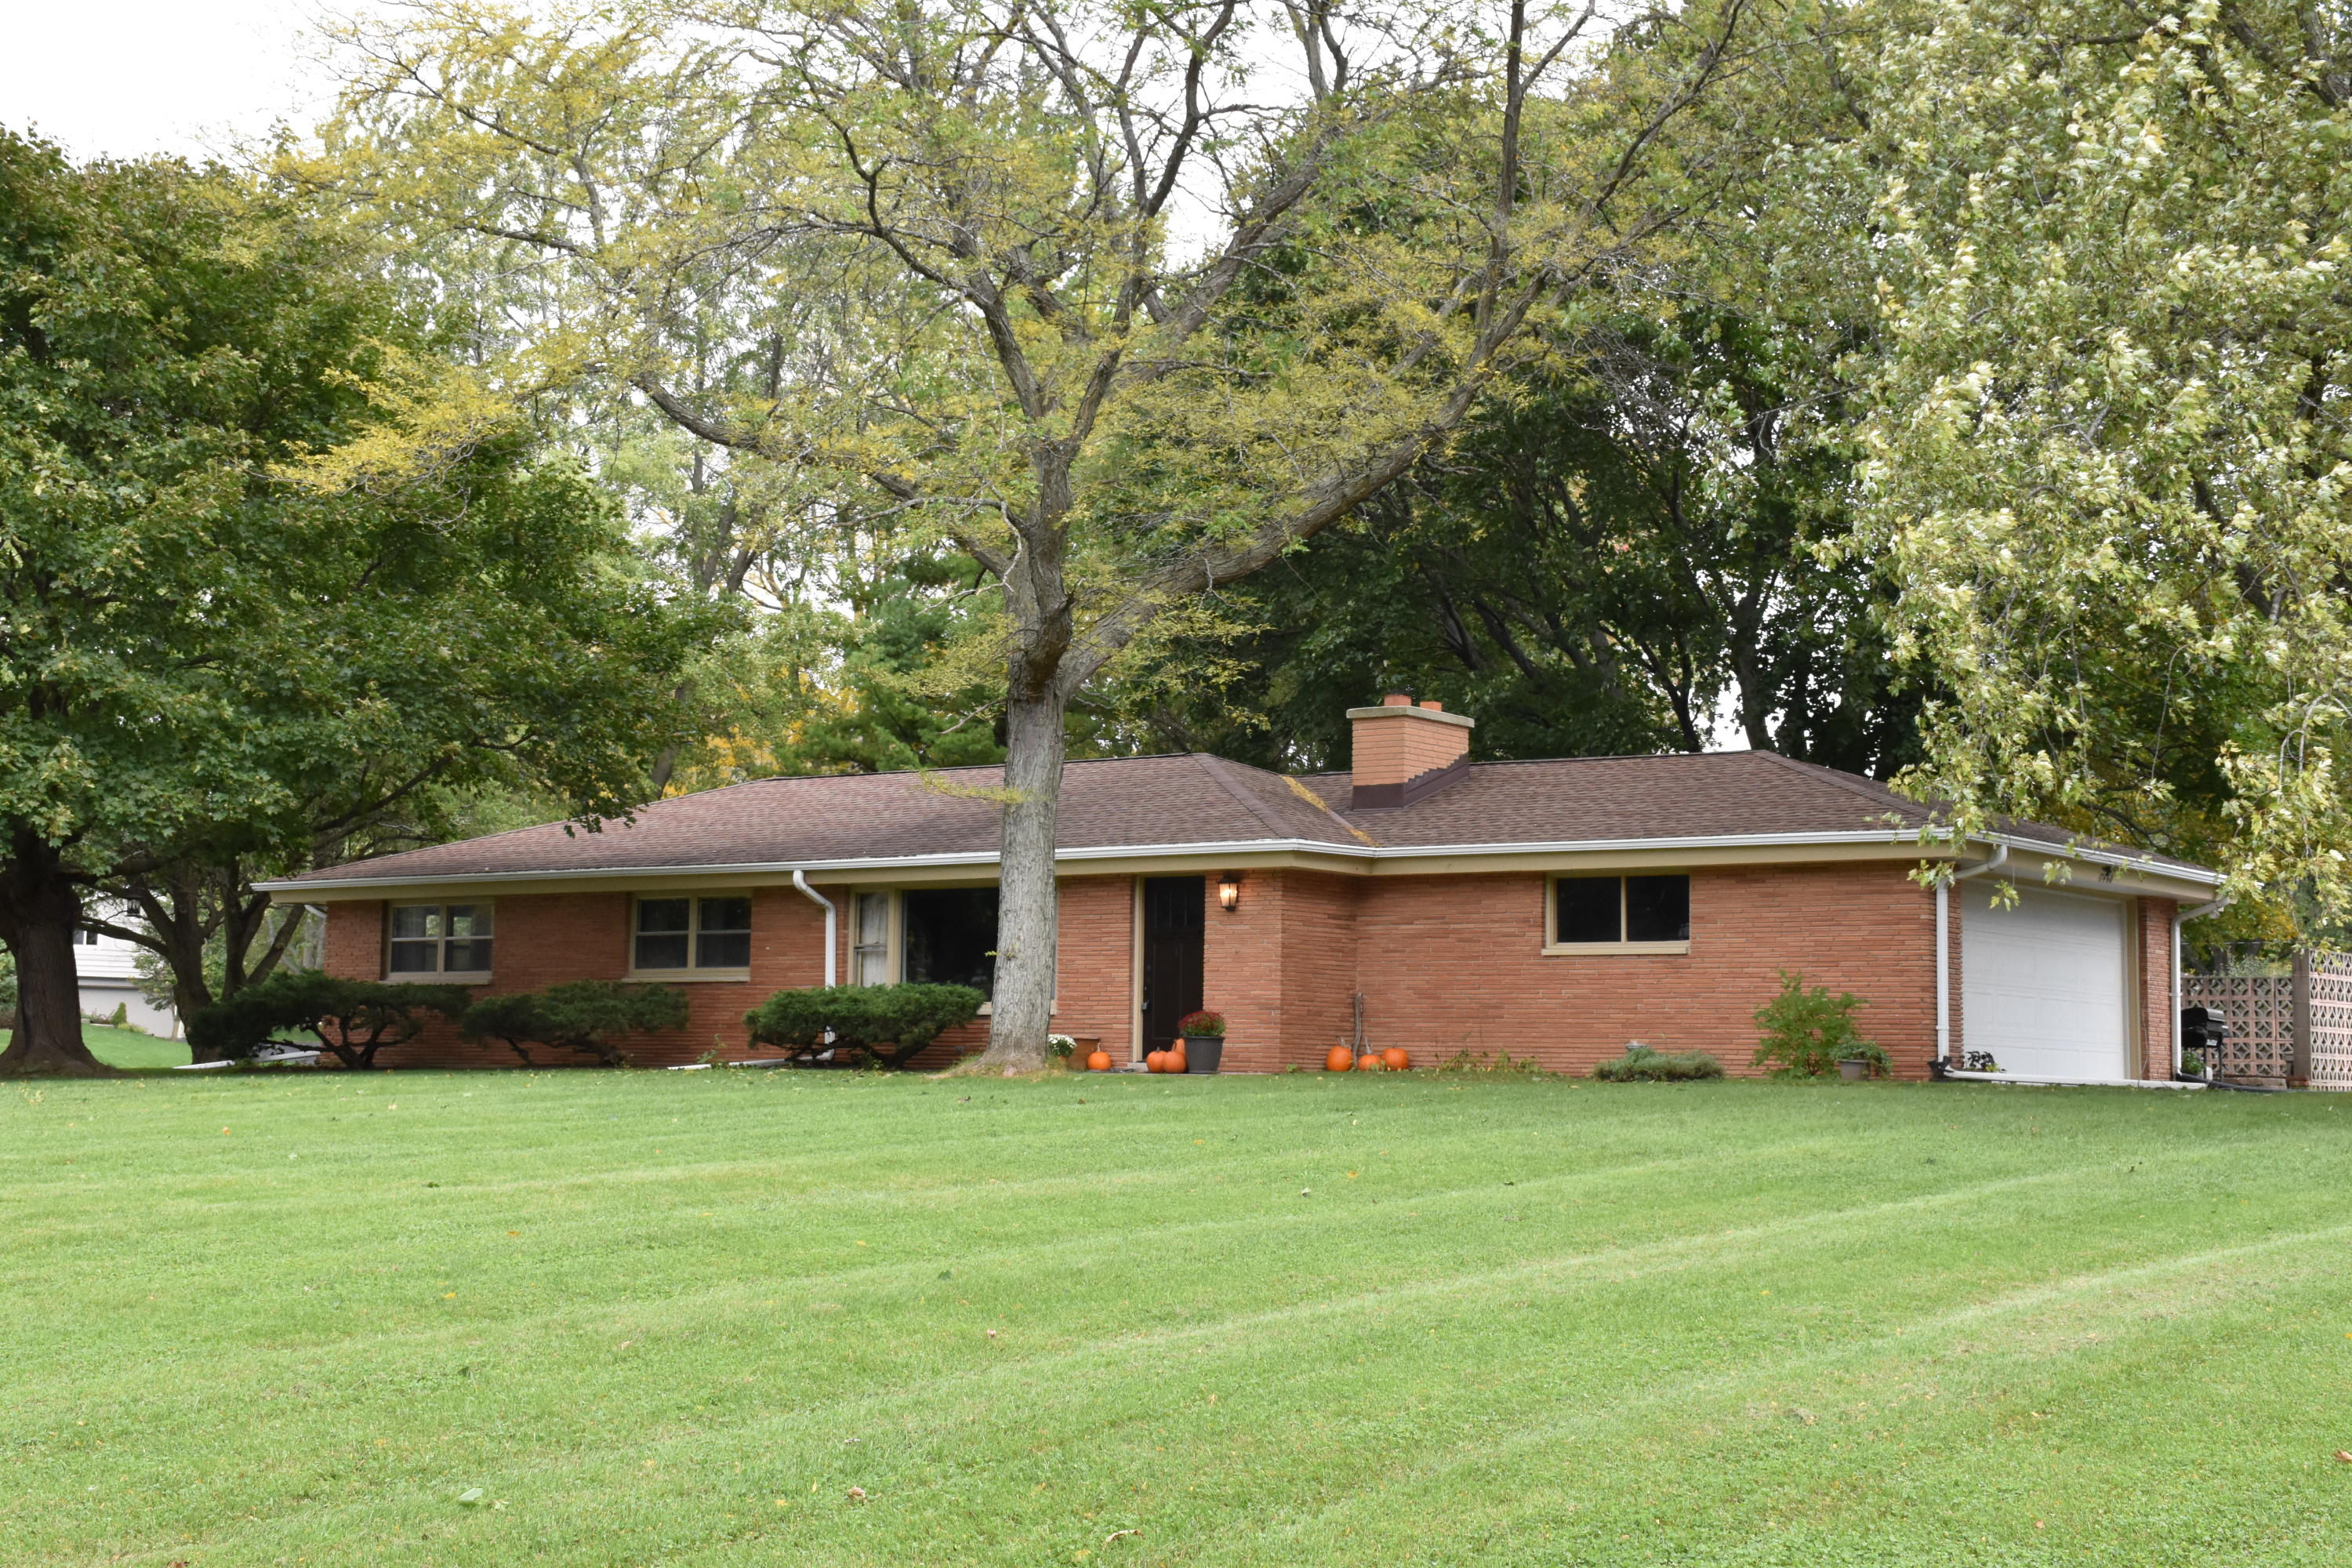 17460 Country Ln, Brookfield, Wisconsin 53045, 3 Bedrooms Bedrooms, 6 Rooms Rooms,1 BathroomBathrooms,Single-Family,For Sale,Country Ln,1610077